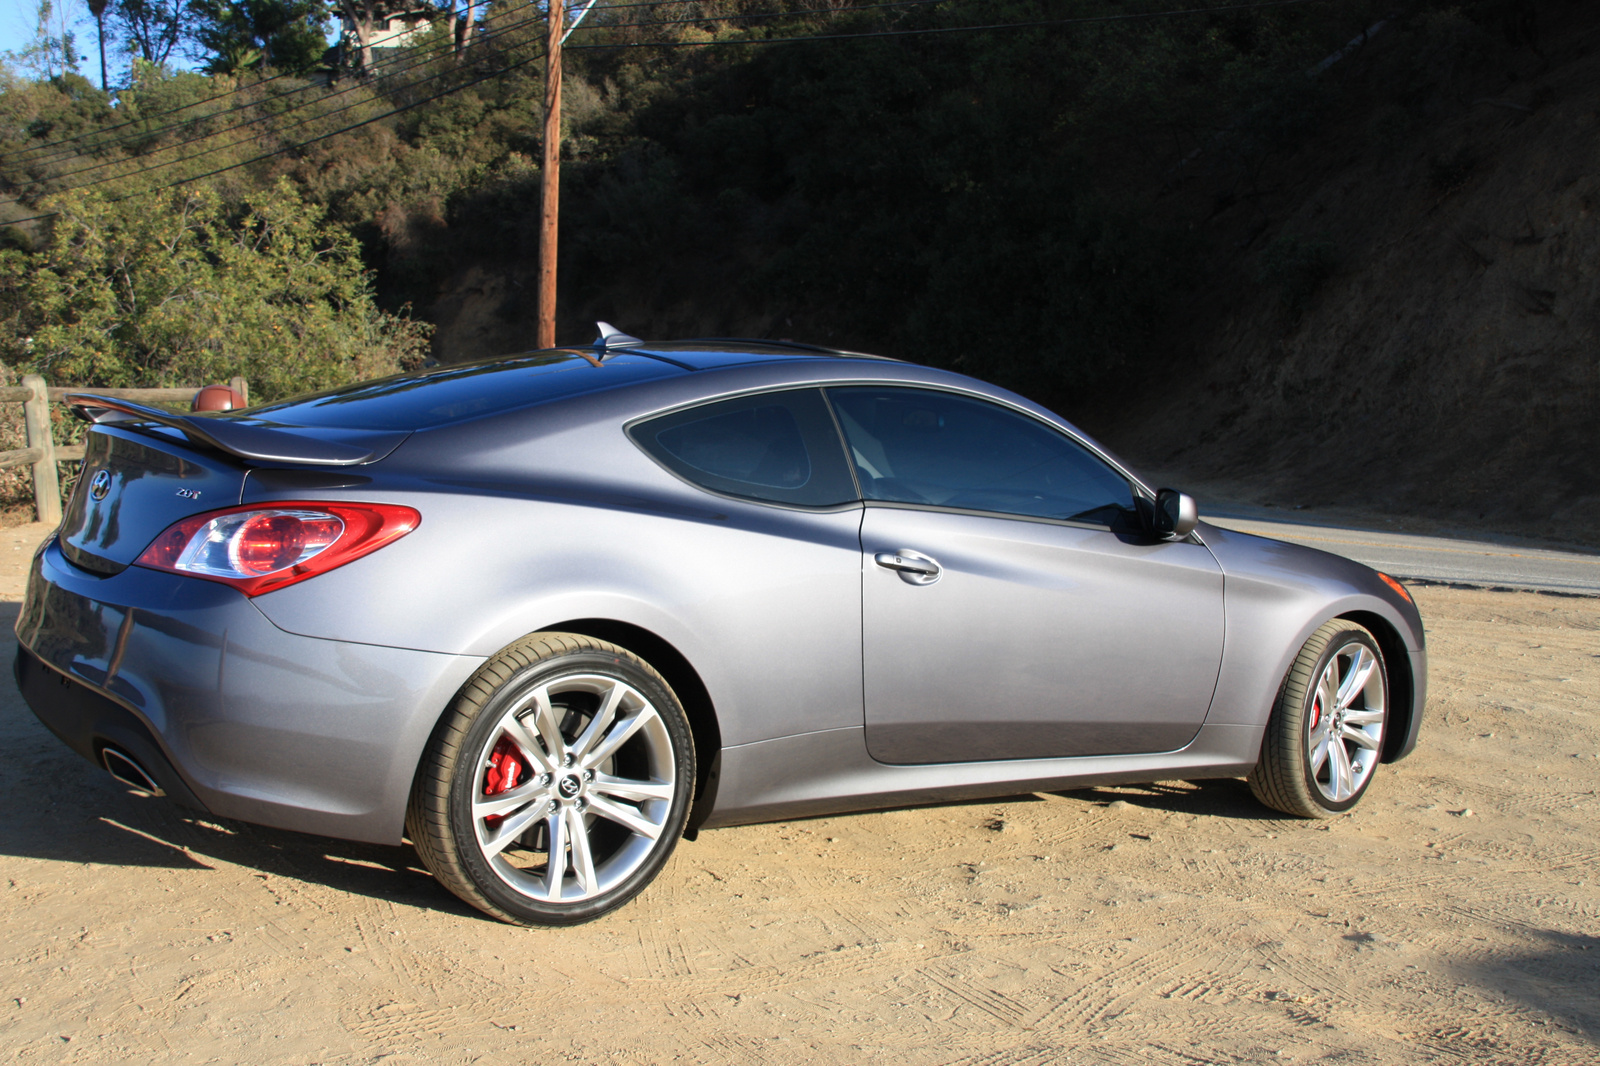 2010 hyundai genesis coupe pictures cargurus. Black Bedroom Furniture Sets. Home Design Ideas